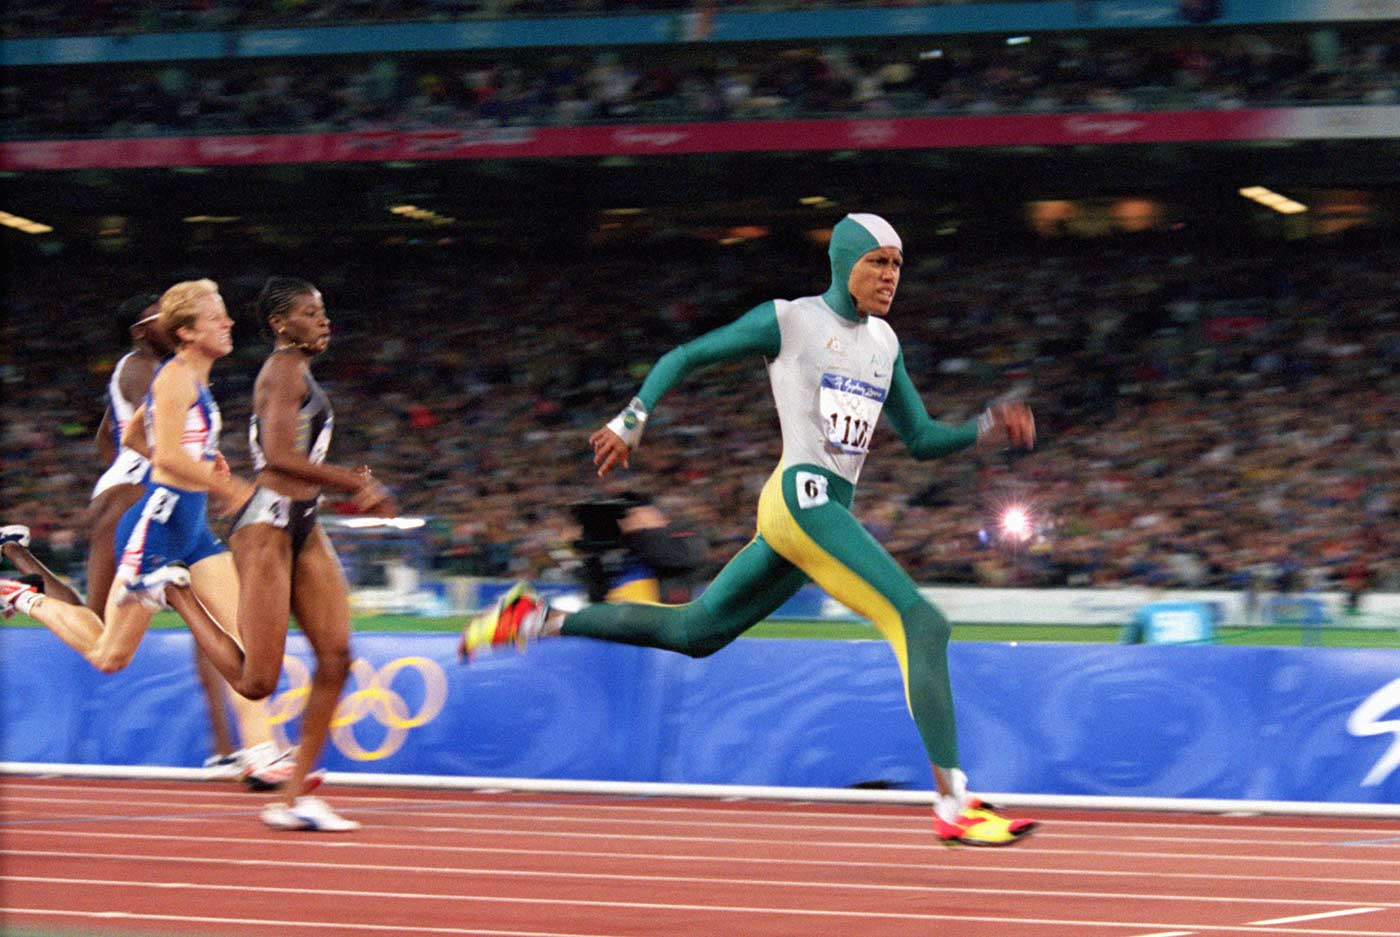 Cathy Freeman sprinting ahead of other athletes on a race track.